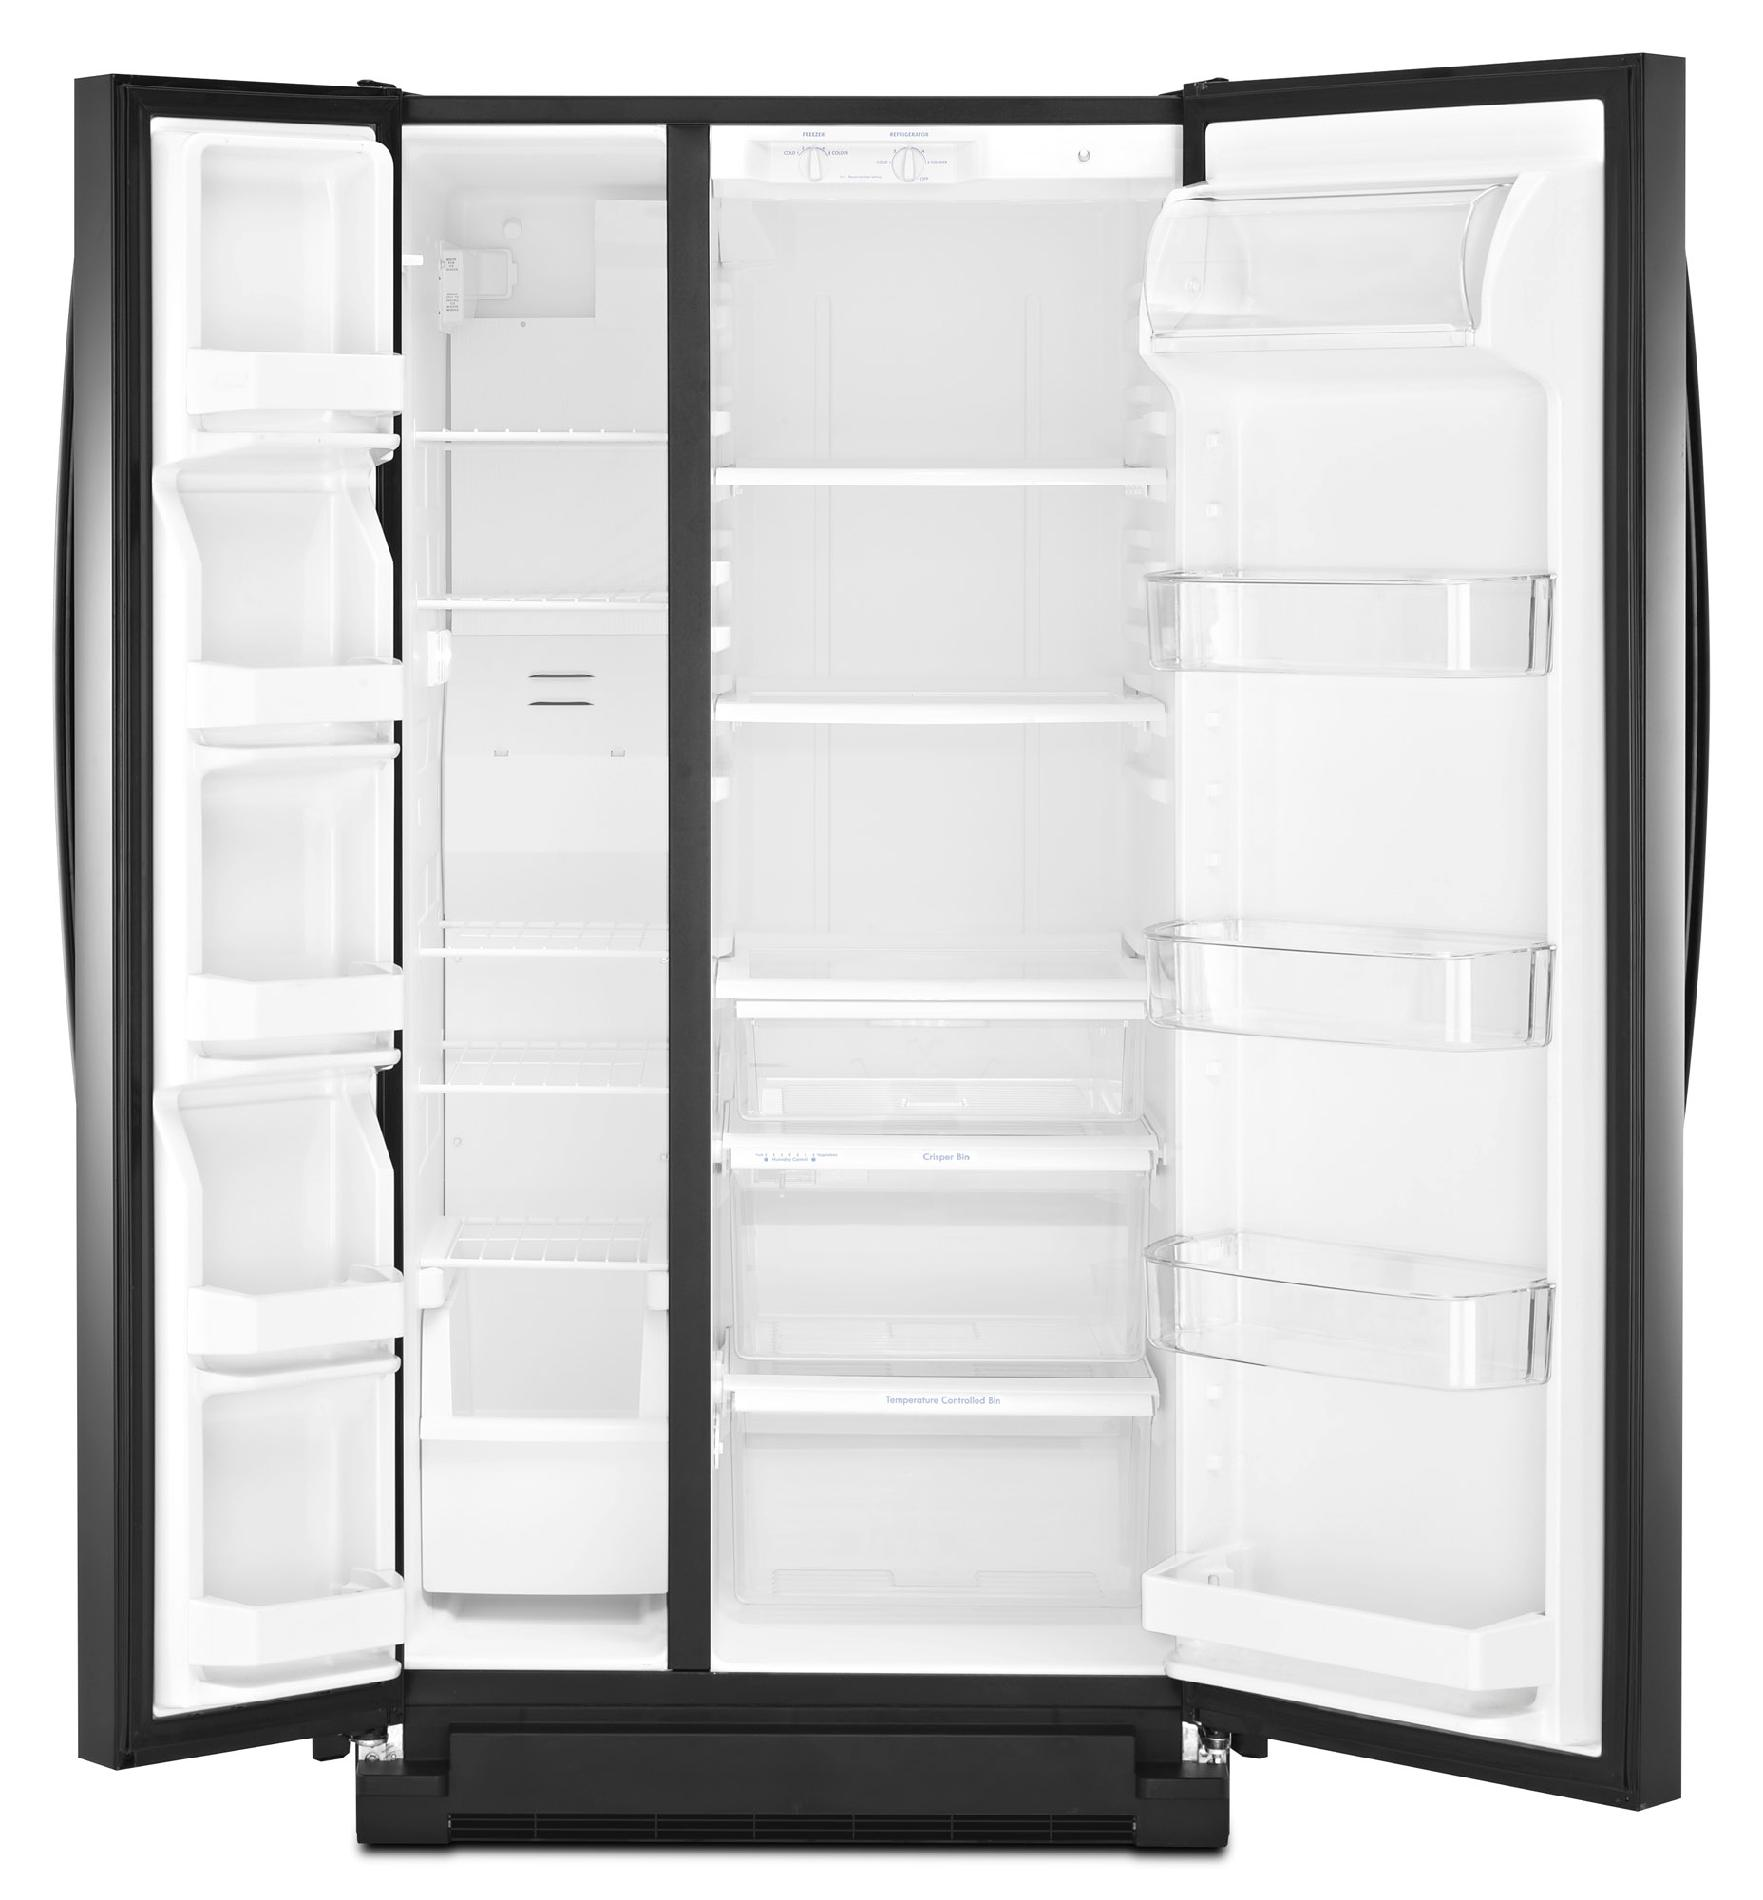 Kenmore 21.7 cu. ft. Side-by-Side Refrigerator - Black